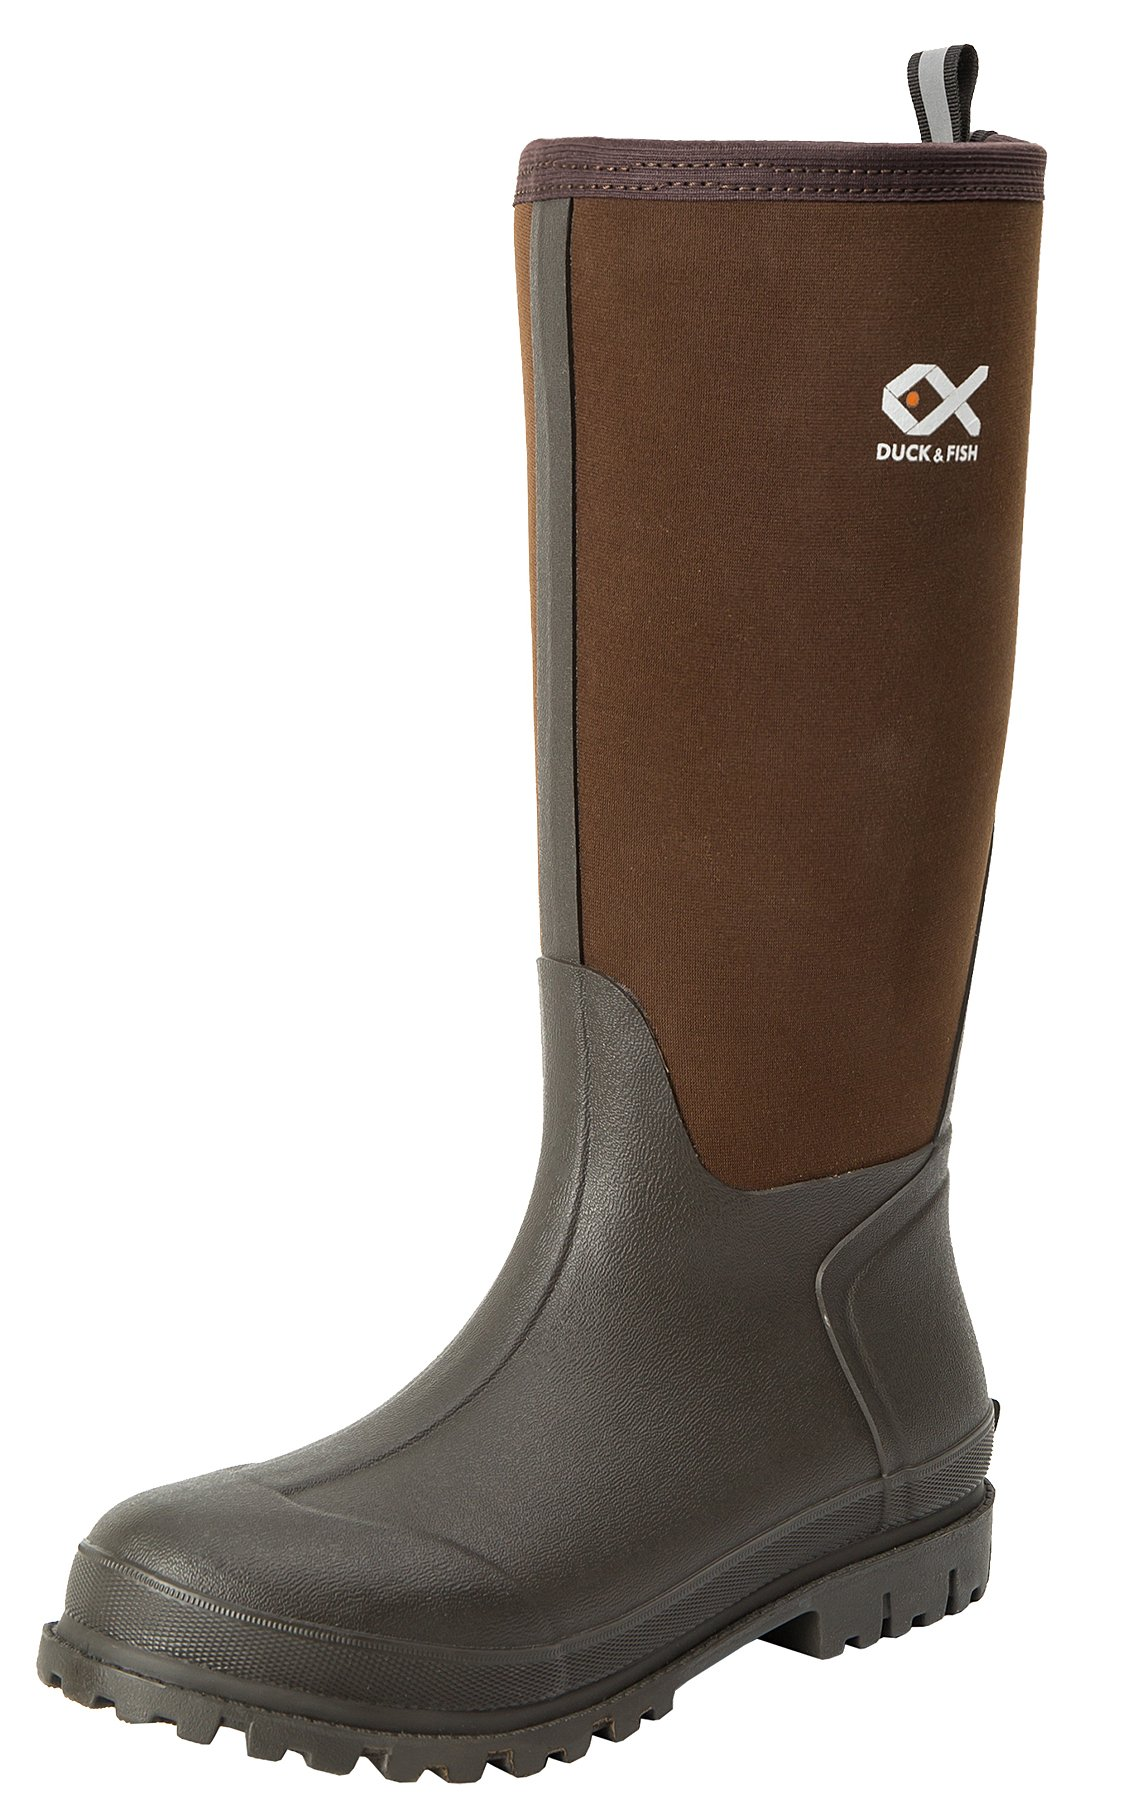 Duck and Fish Women 15 inches Fishing Hunting Neoprene Rubber Molded Outsole Knee Boot (4 M US Men / 6 M US Women, Brown) by DUCK & FISH